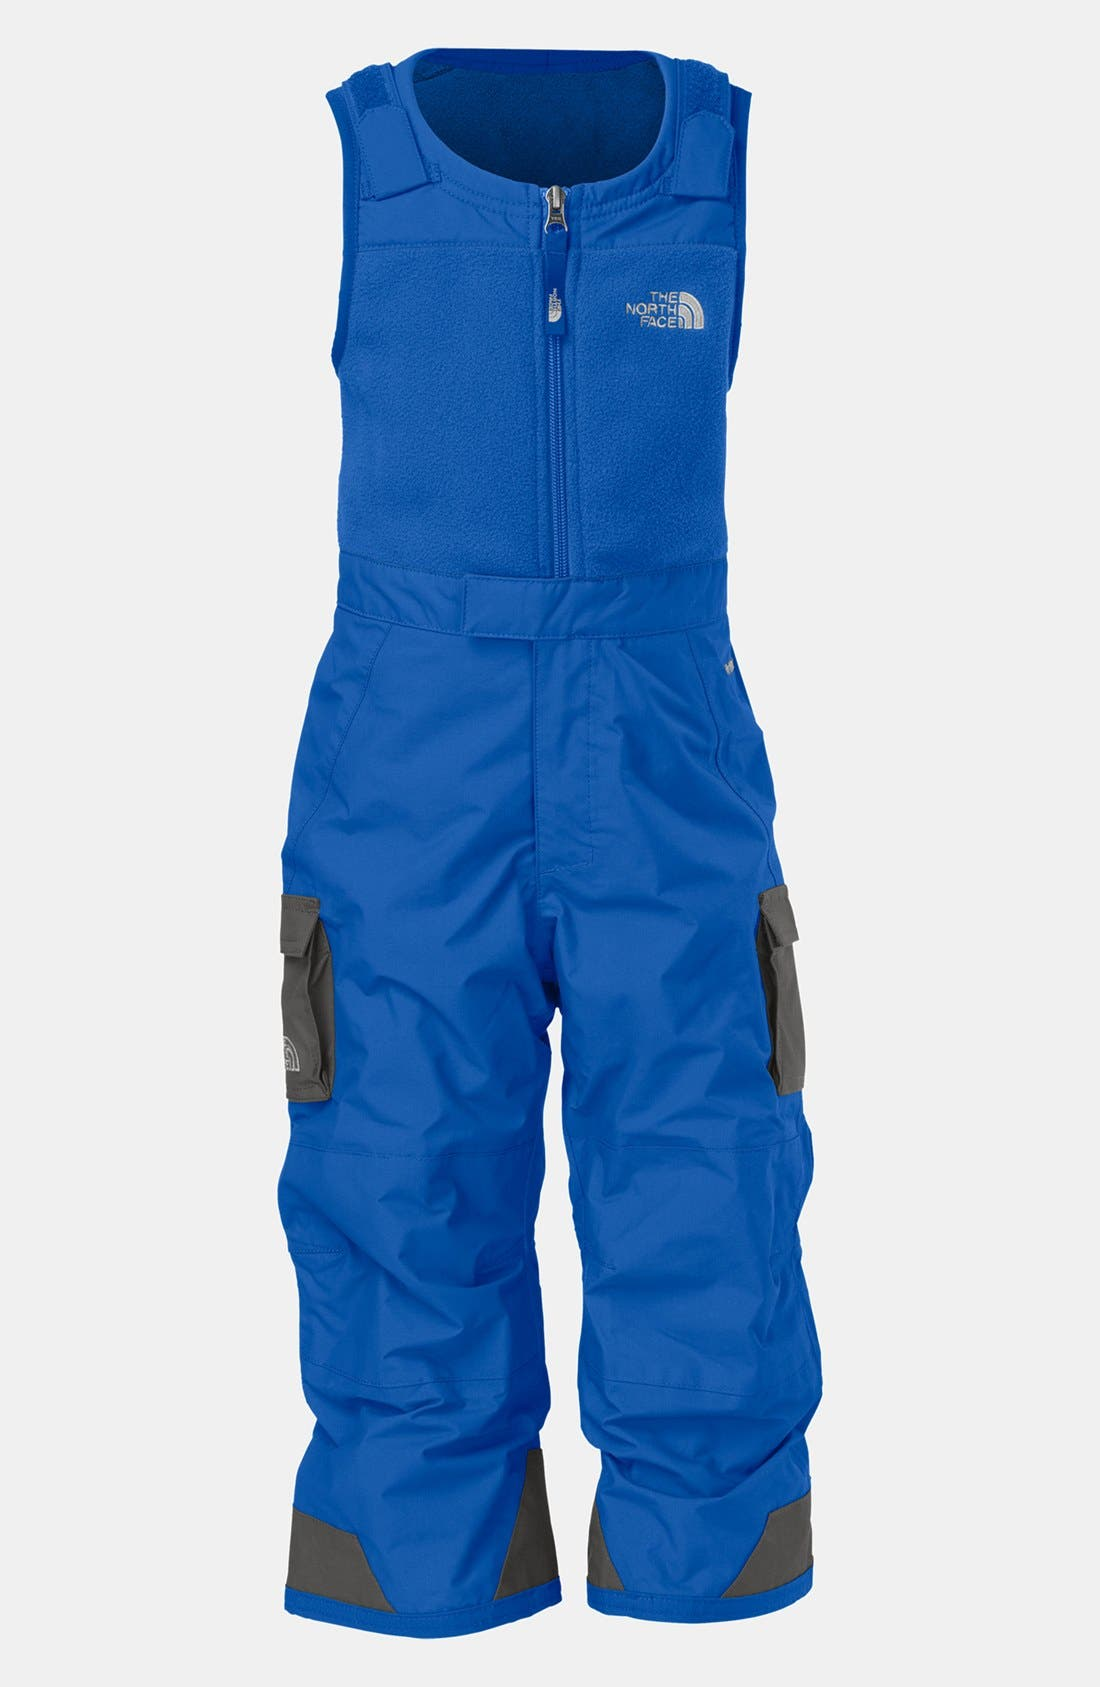 Alternate Image 1 Selected - The North Face 'Snowdrift' Insulated Bib Overalls (Toddler Boys)